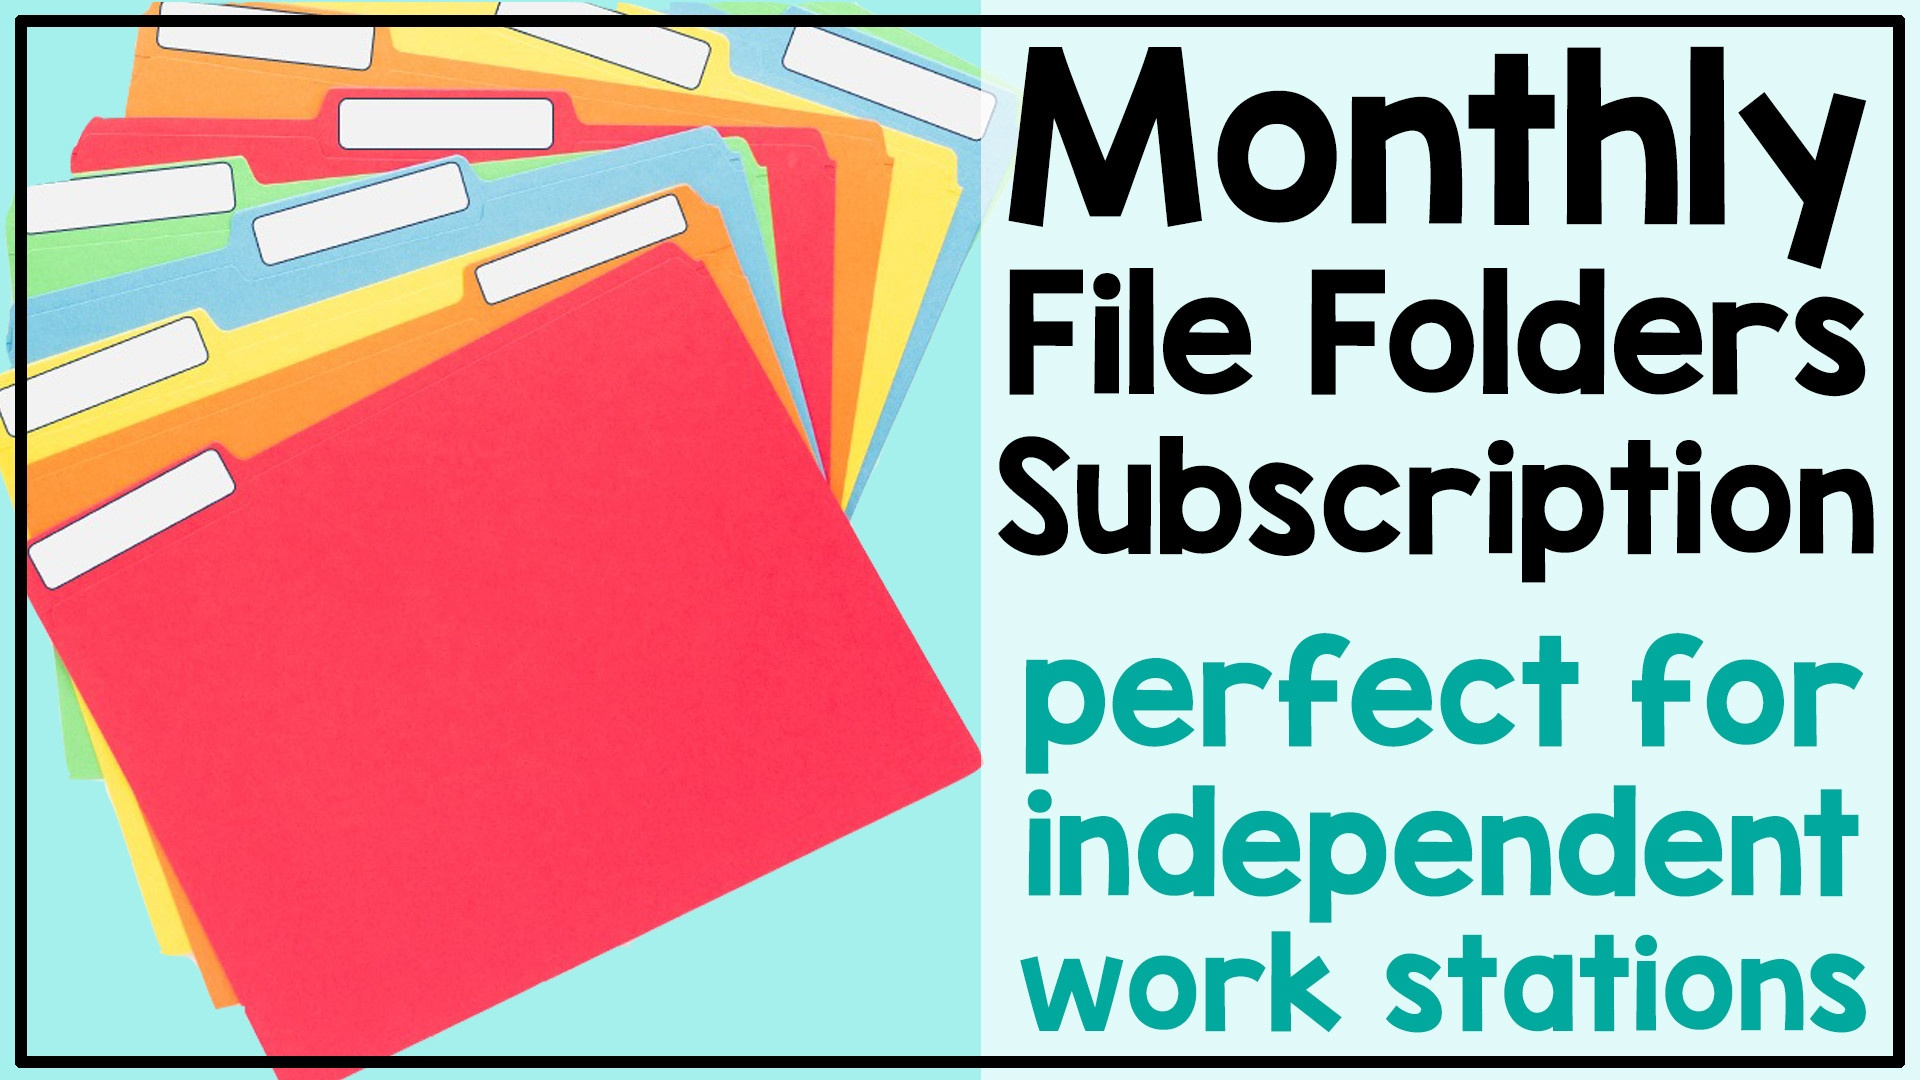 Monthly File Folders Subscription perfect for independent work stations